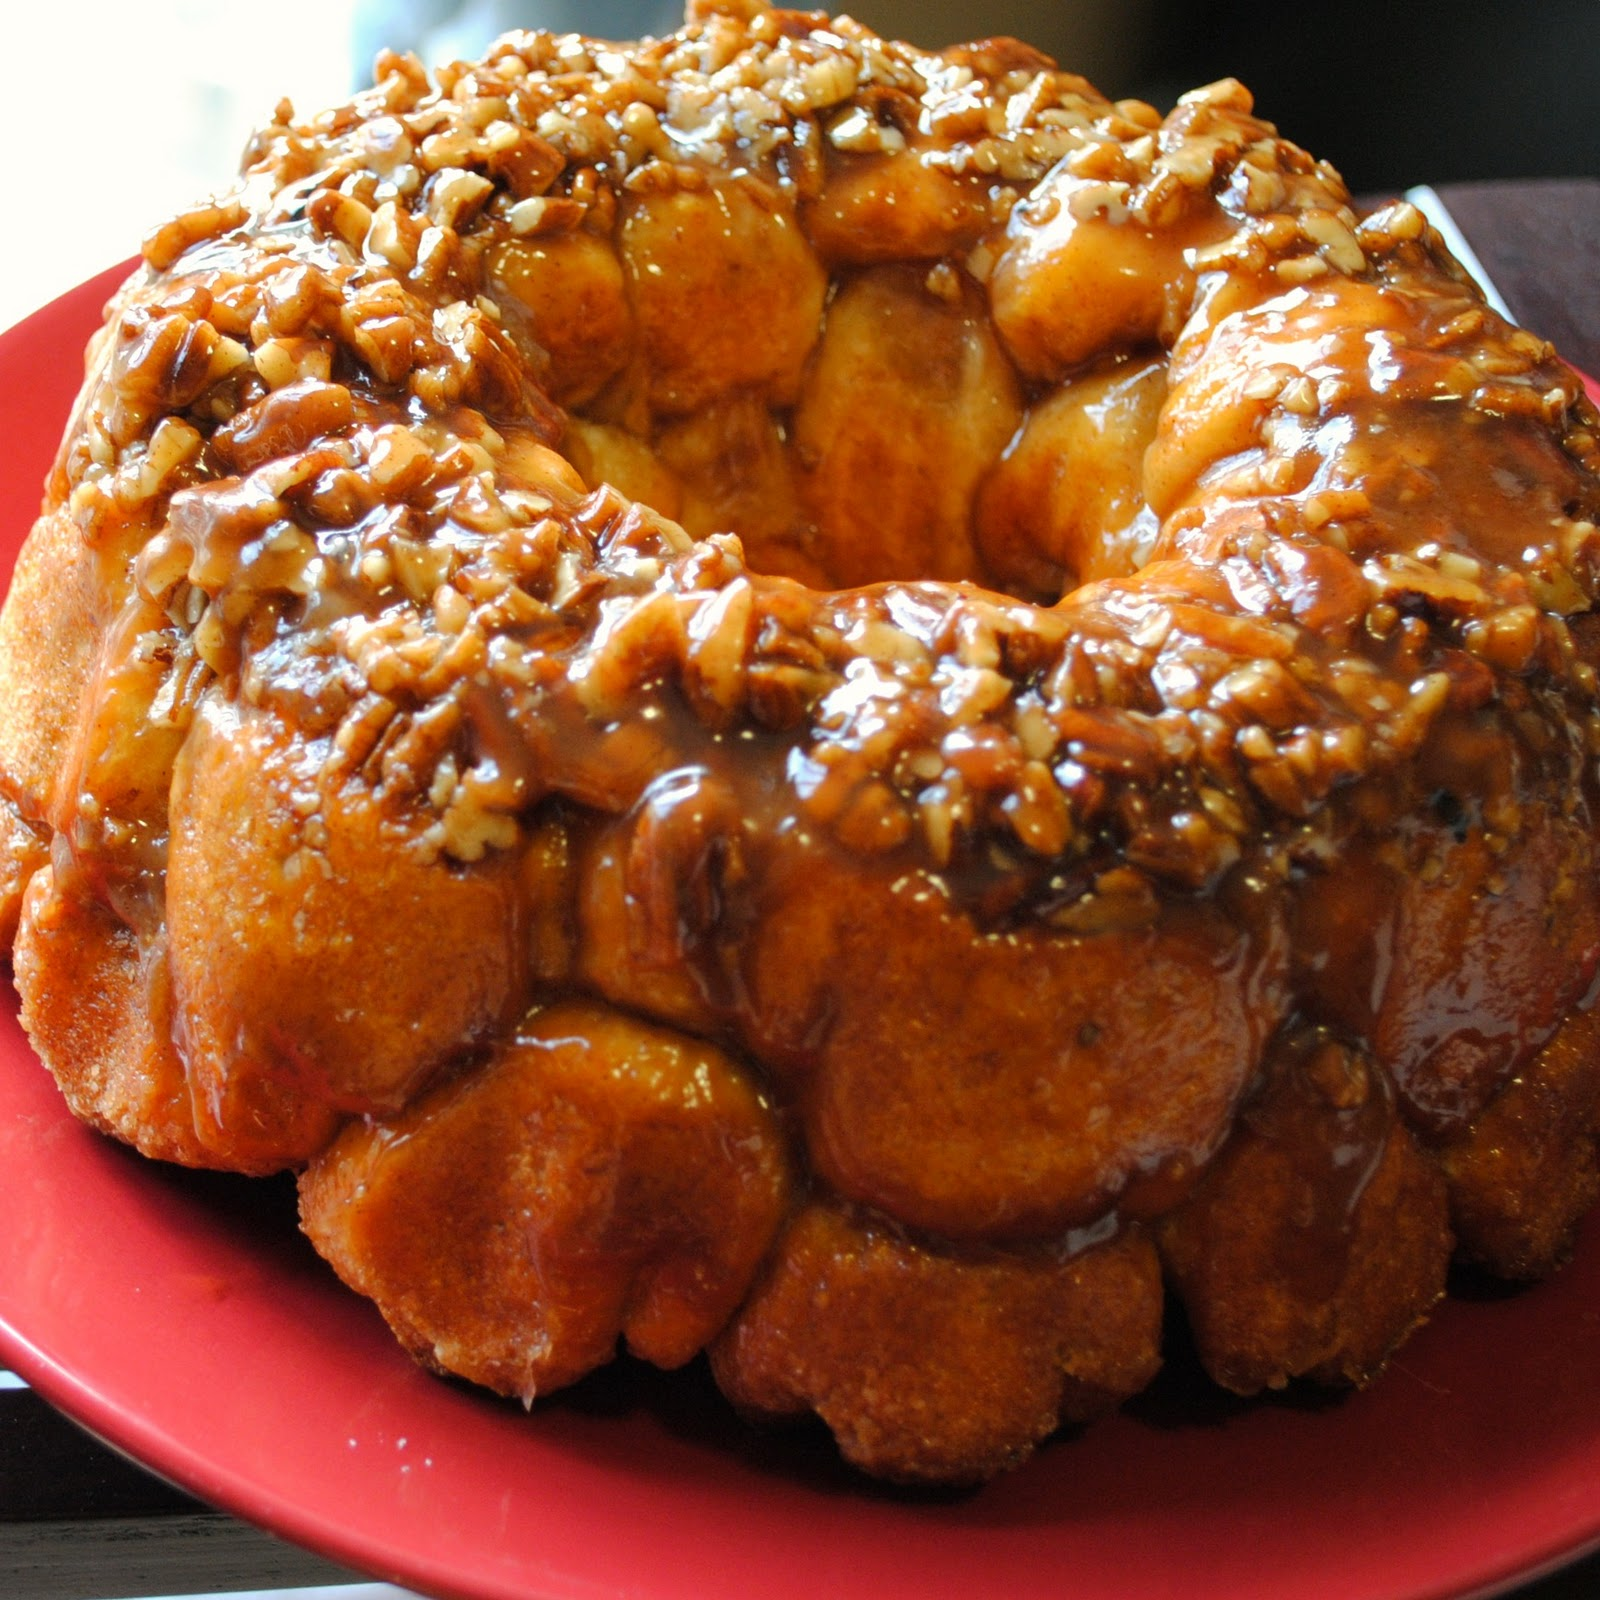 Homemade By Holman: Apple Cinnamon Monkey Bread